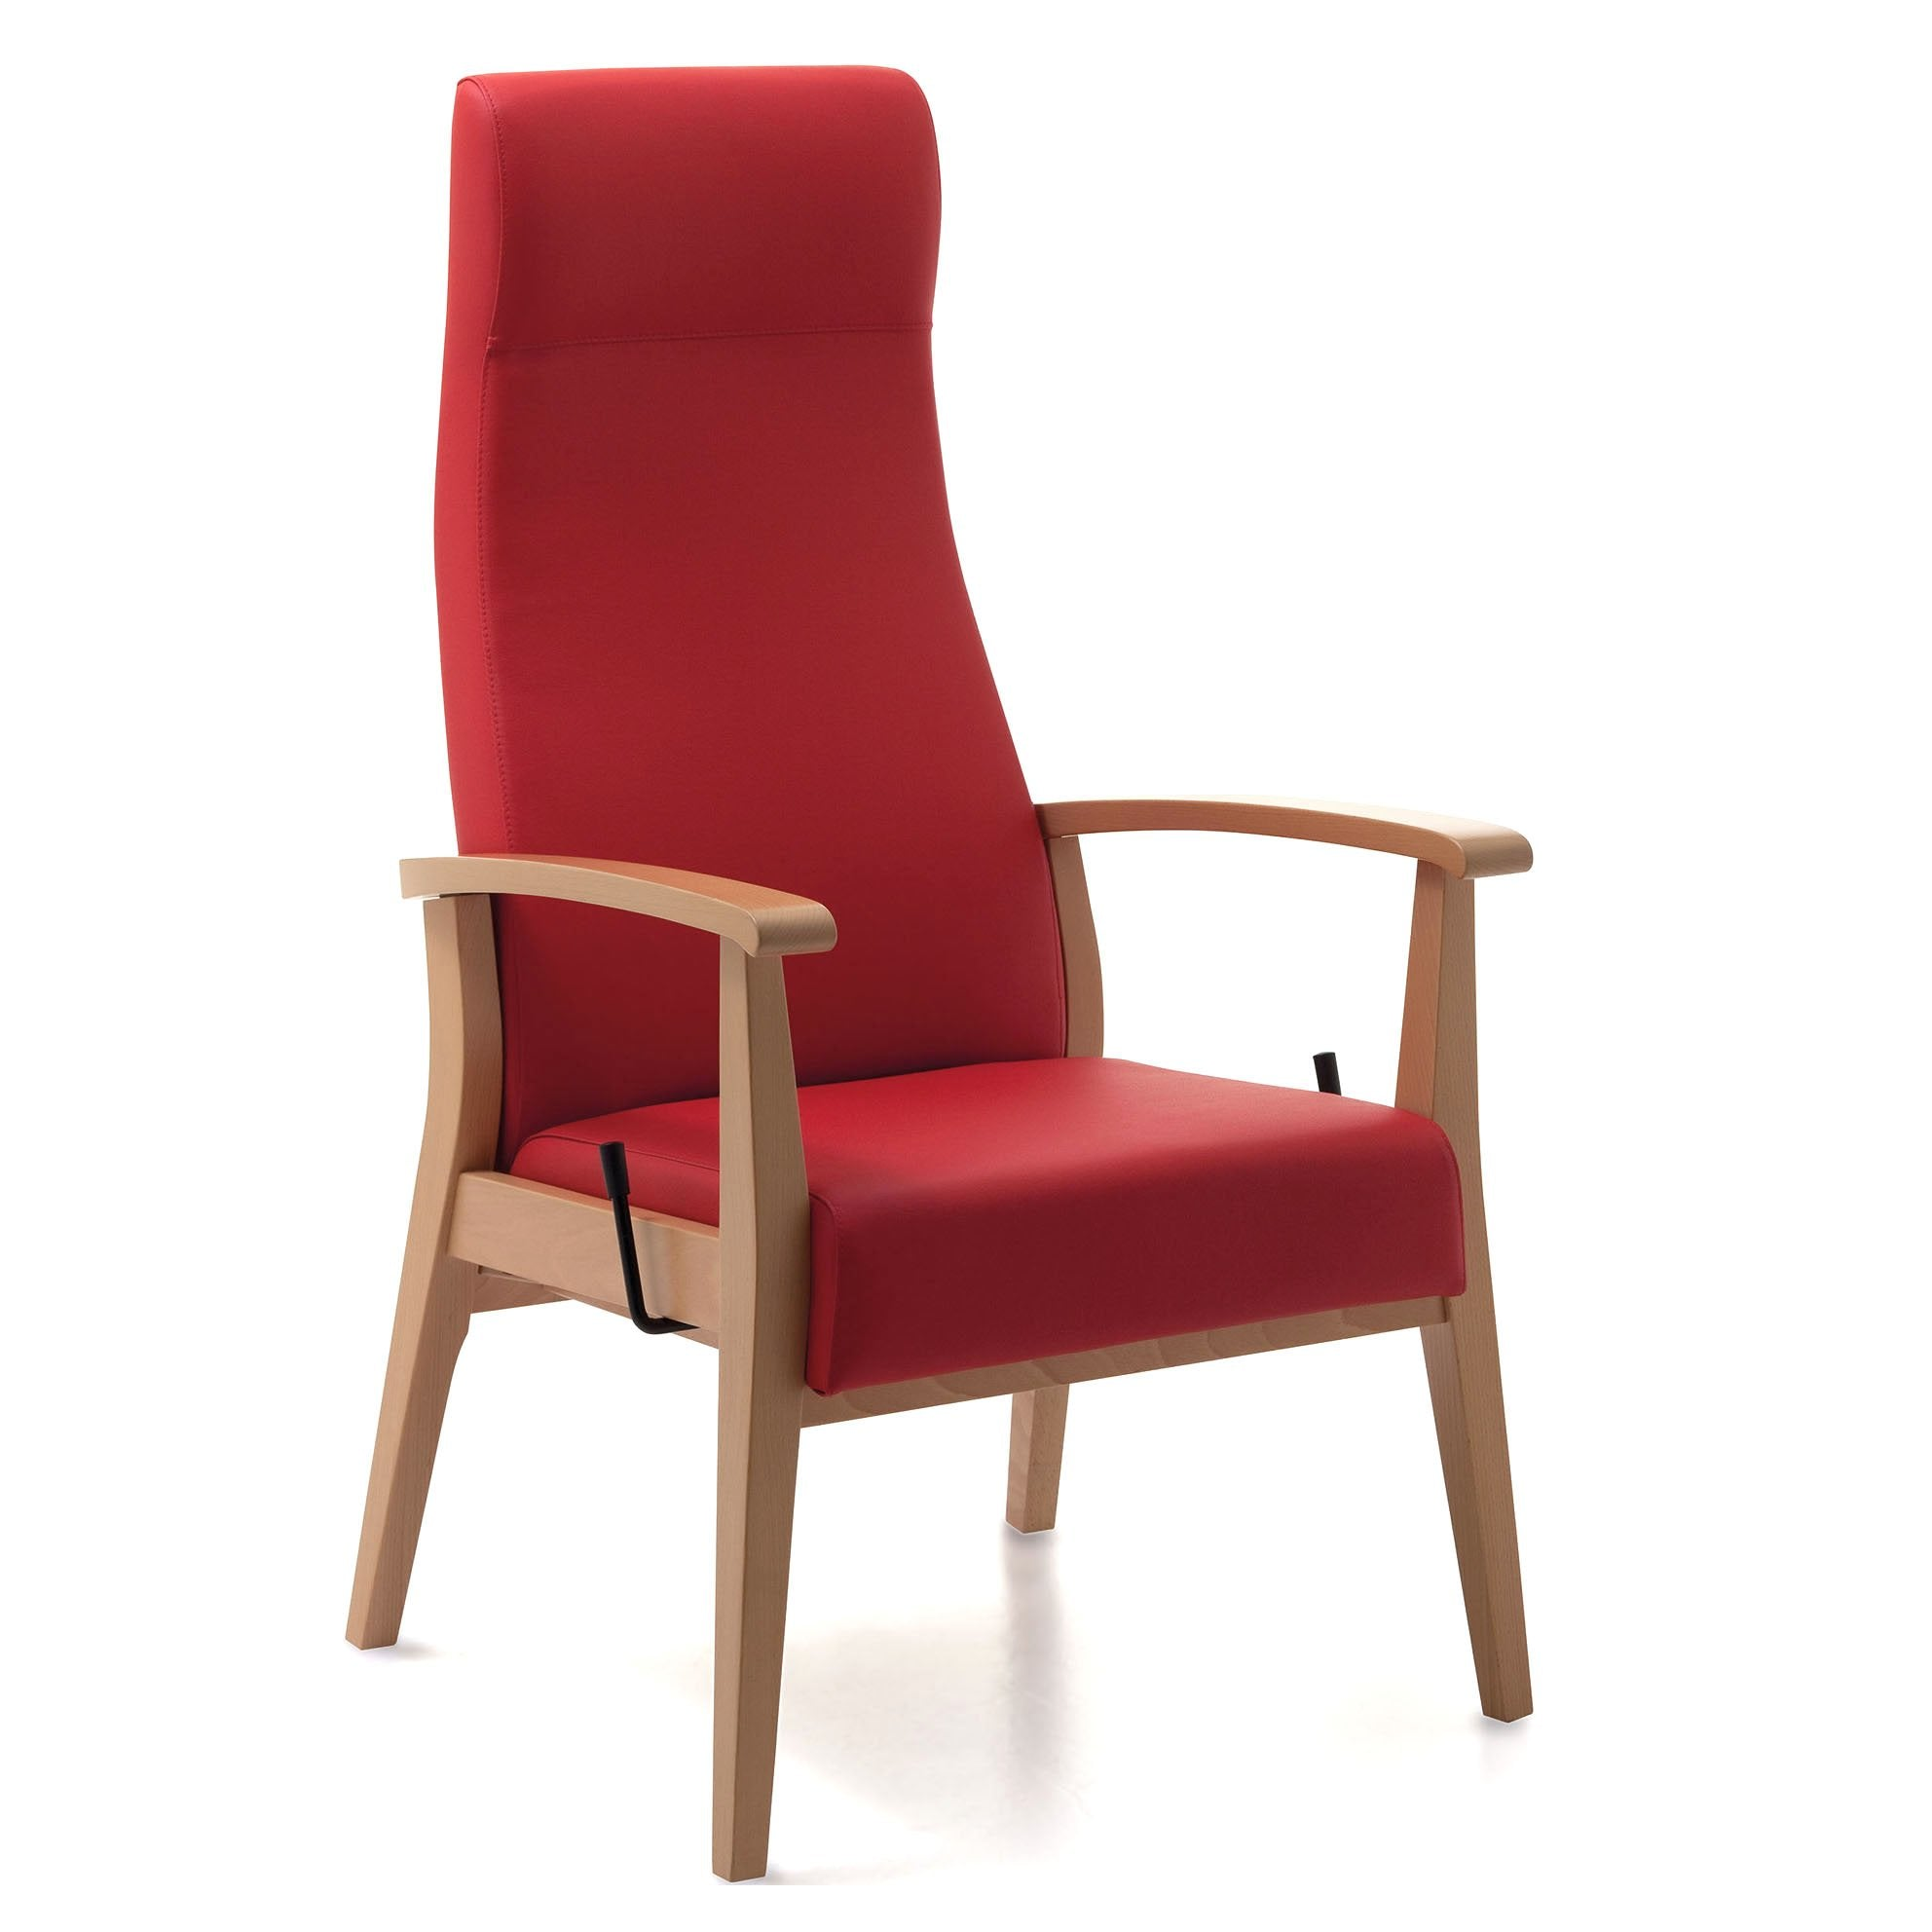 Aero 52-63/3RG Lounge Chair-Piaval-Contract Furniture Store